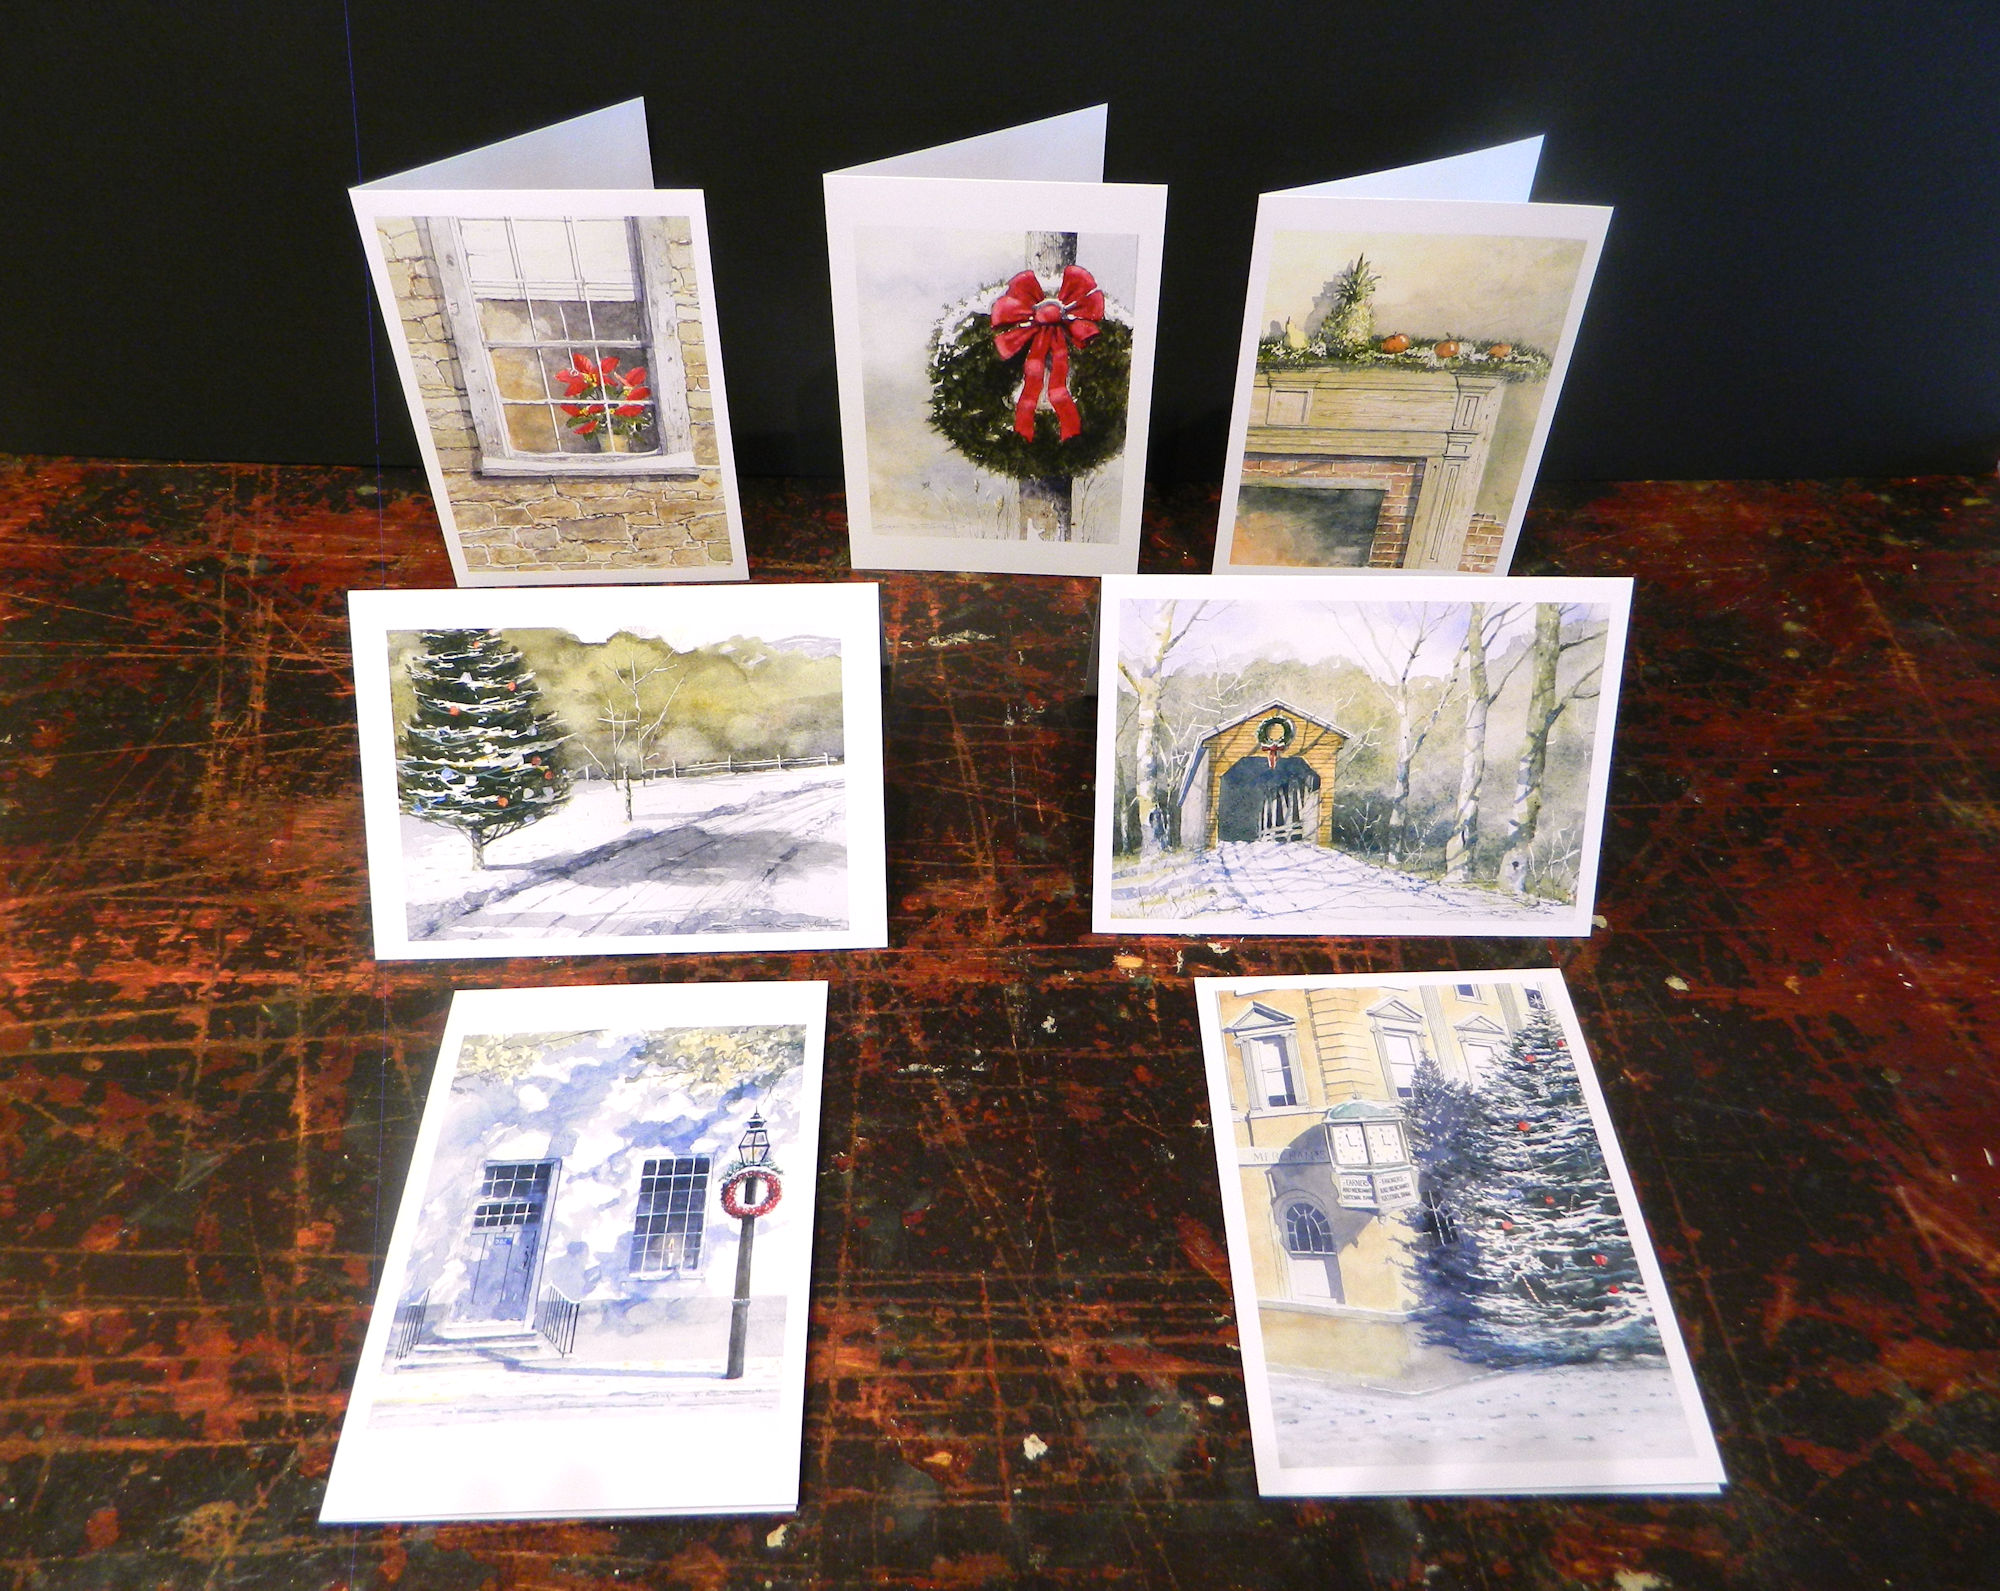 Notecards in this pack: Christmas Past | Old Town Christmas | Christmas Lane | Shenandoah Christmas | Christmas Window | Christmas Wreath | Christmas Glow | 7-pack w/envelopes $21